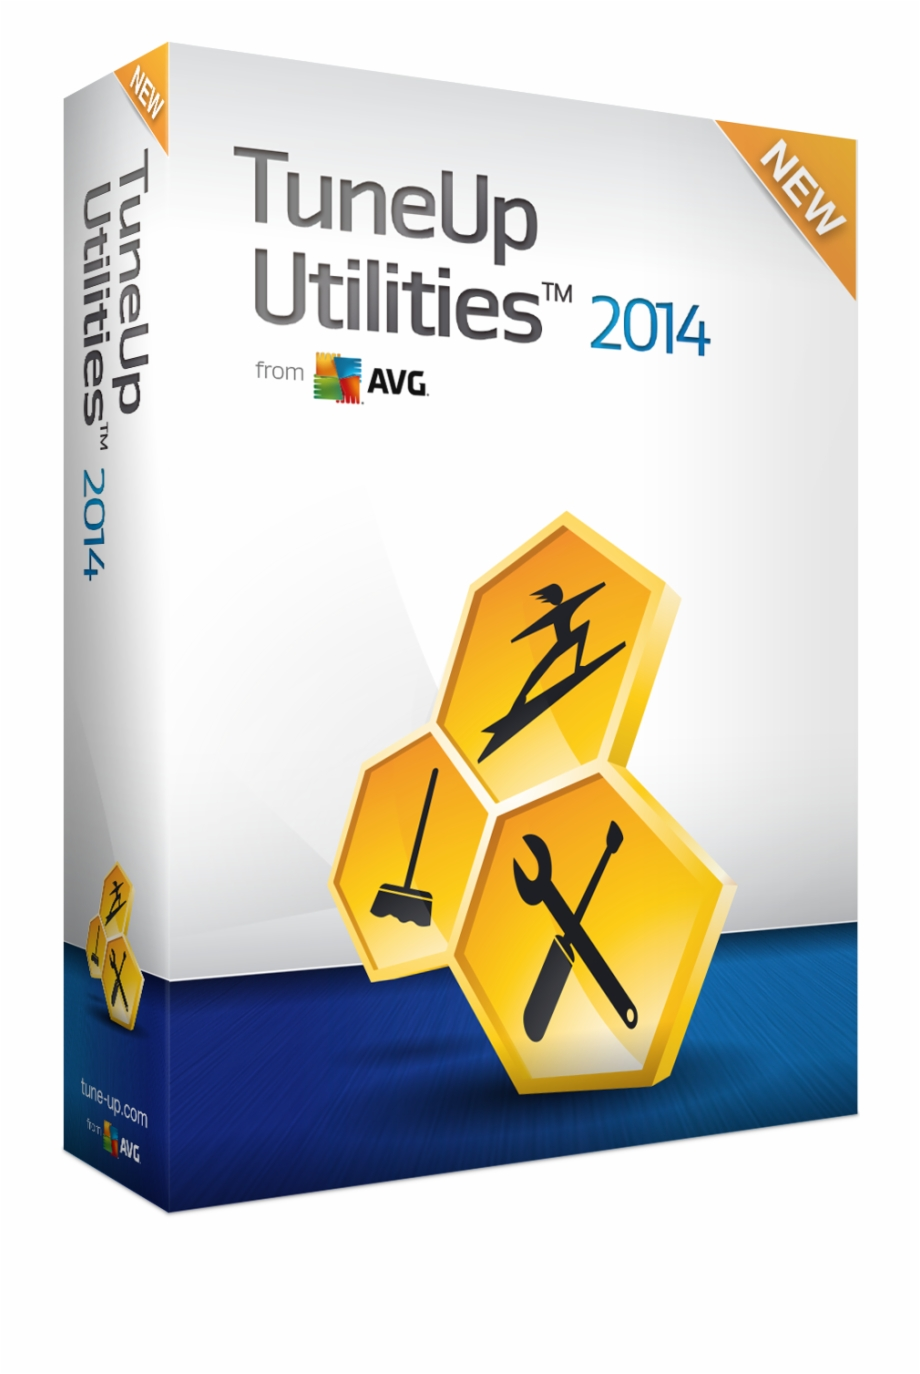 Tuneup Utilities 2018 : tuneup, utilities, Windows, Loader, Finale, Version, Download, Tuneup, Utilities, Transparent, #3944316, Vippng